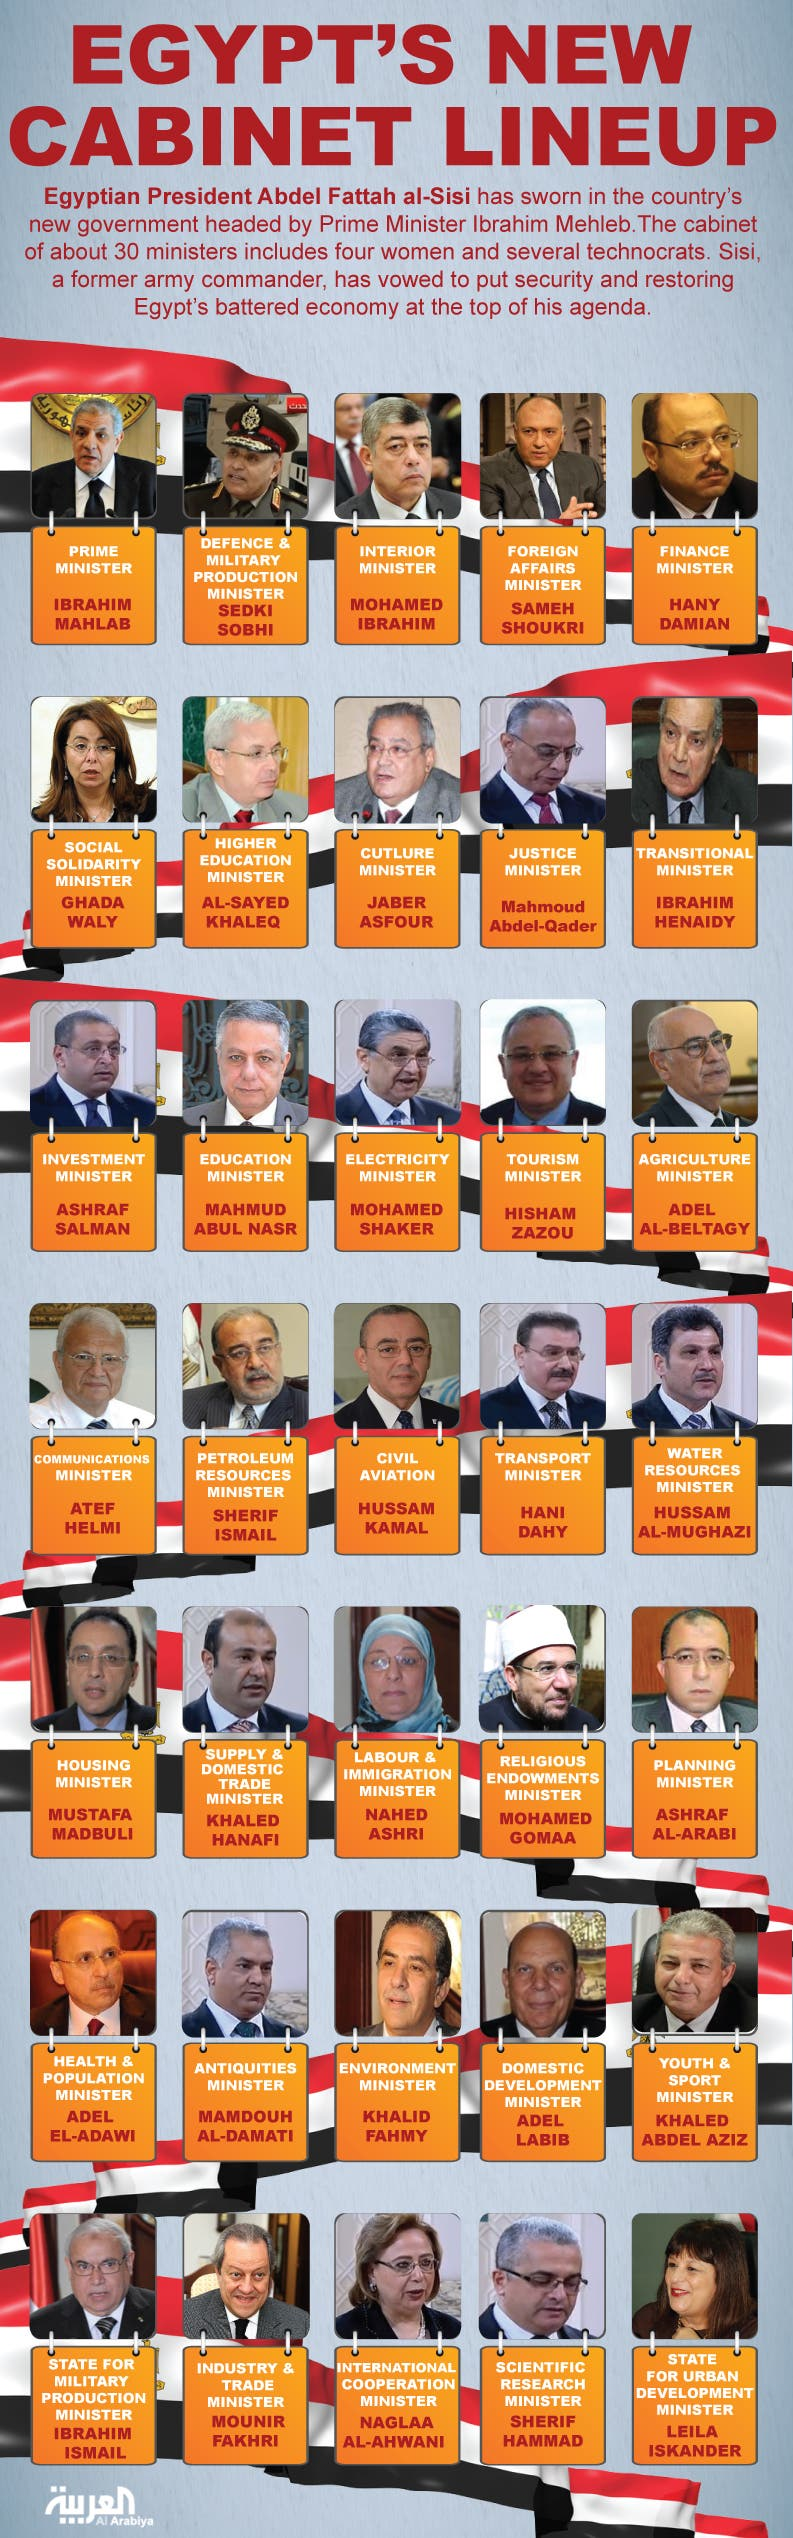 Infographic: Egypt's new cabinet lineup